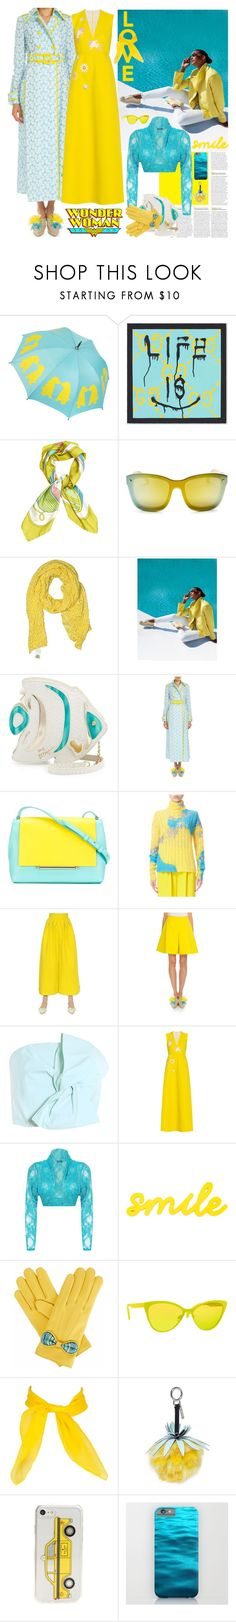 """Mermaid Slippers: Embellished Shoes"" by yours-styling-best-friend ❤ liked on Polyvore featuring Gucci, Hermès, 3.1 Phillip Lim, Boden, Betsey Johnson, Delpozo, WearAll, Gizelle Renee, Italia Independent and Fendi"